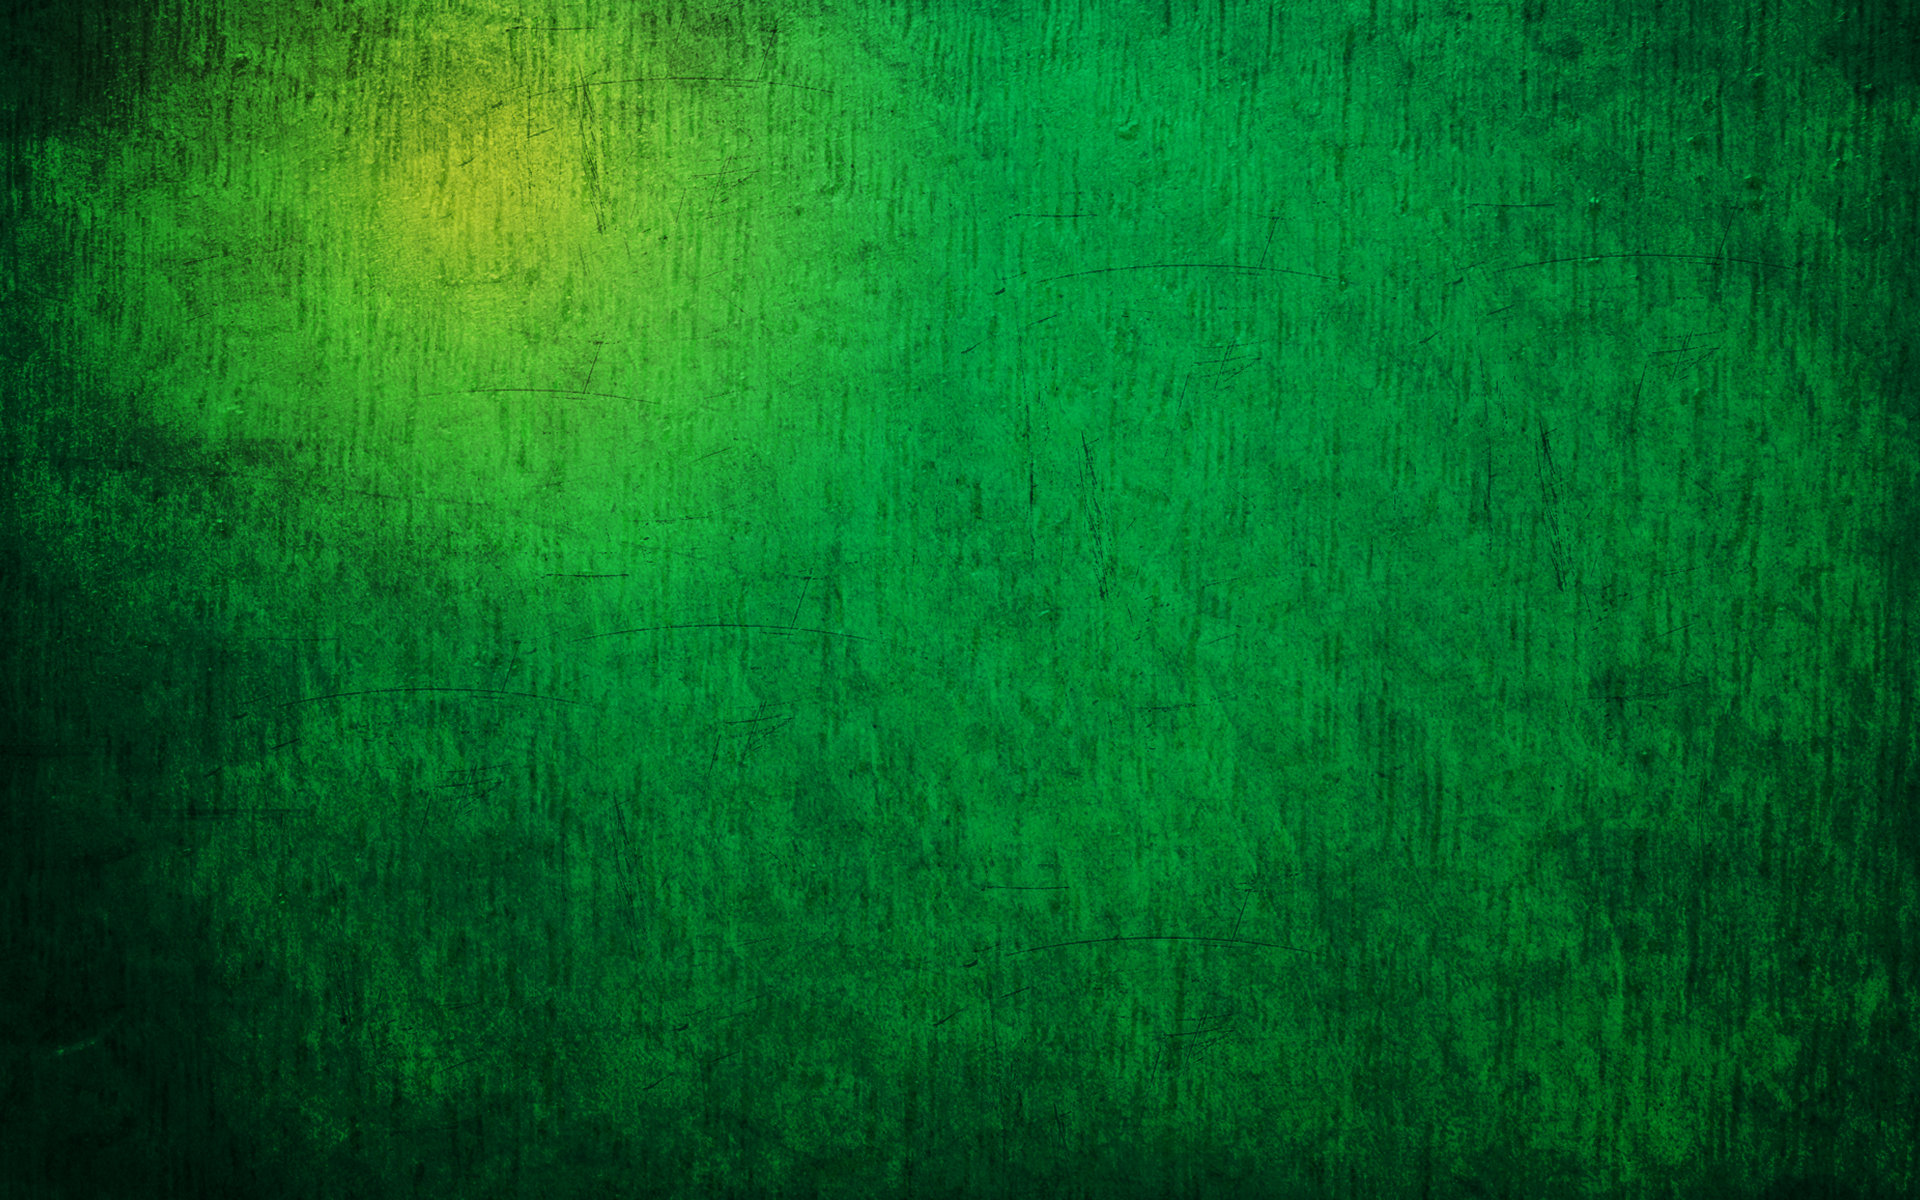 Green Wallpaper 1920x1200